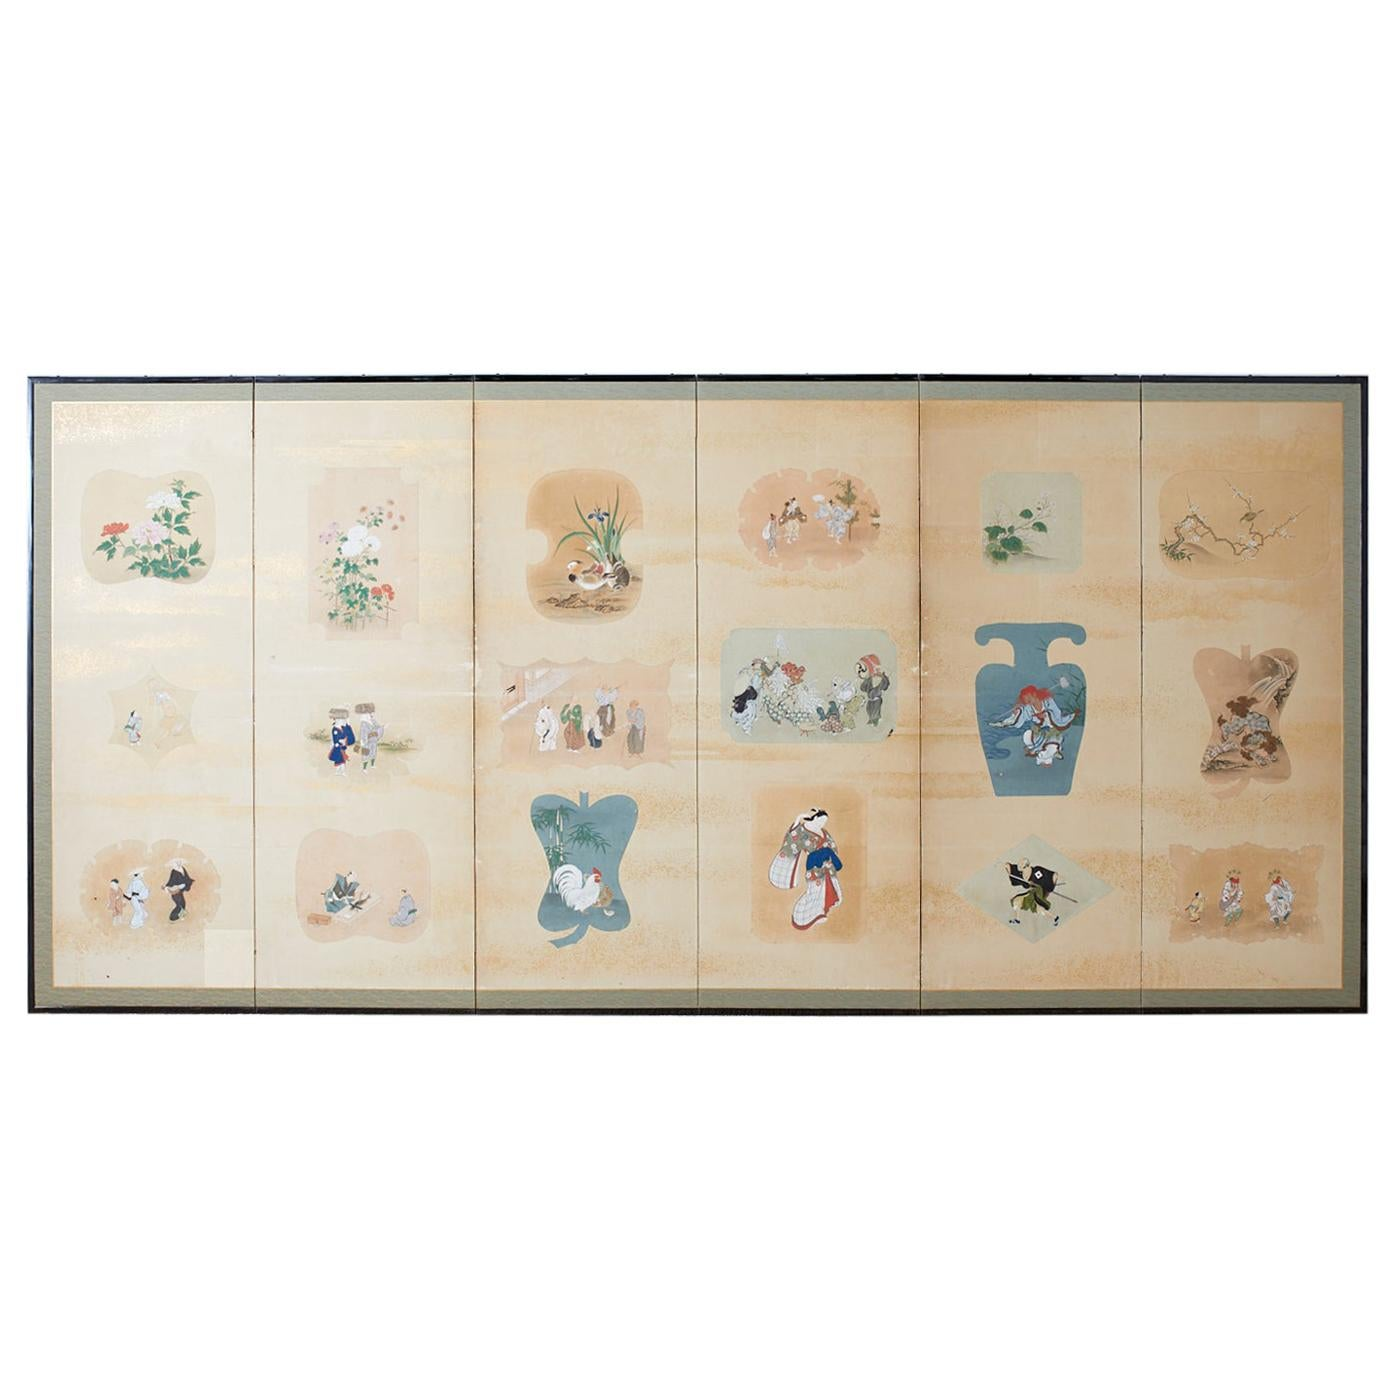 Japanese Showa Six Panel Screen of Painted Vignettes